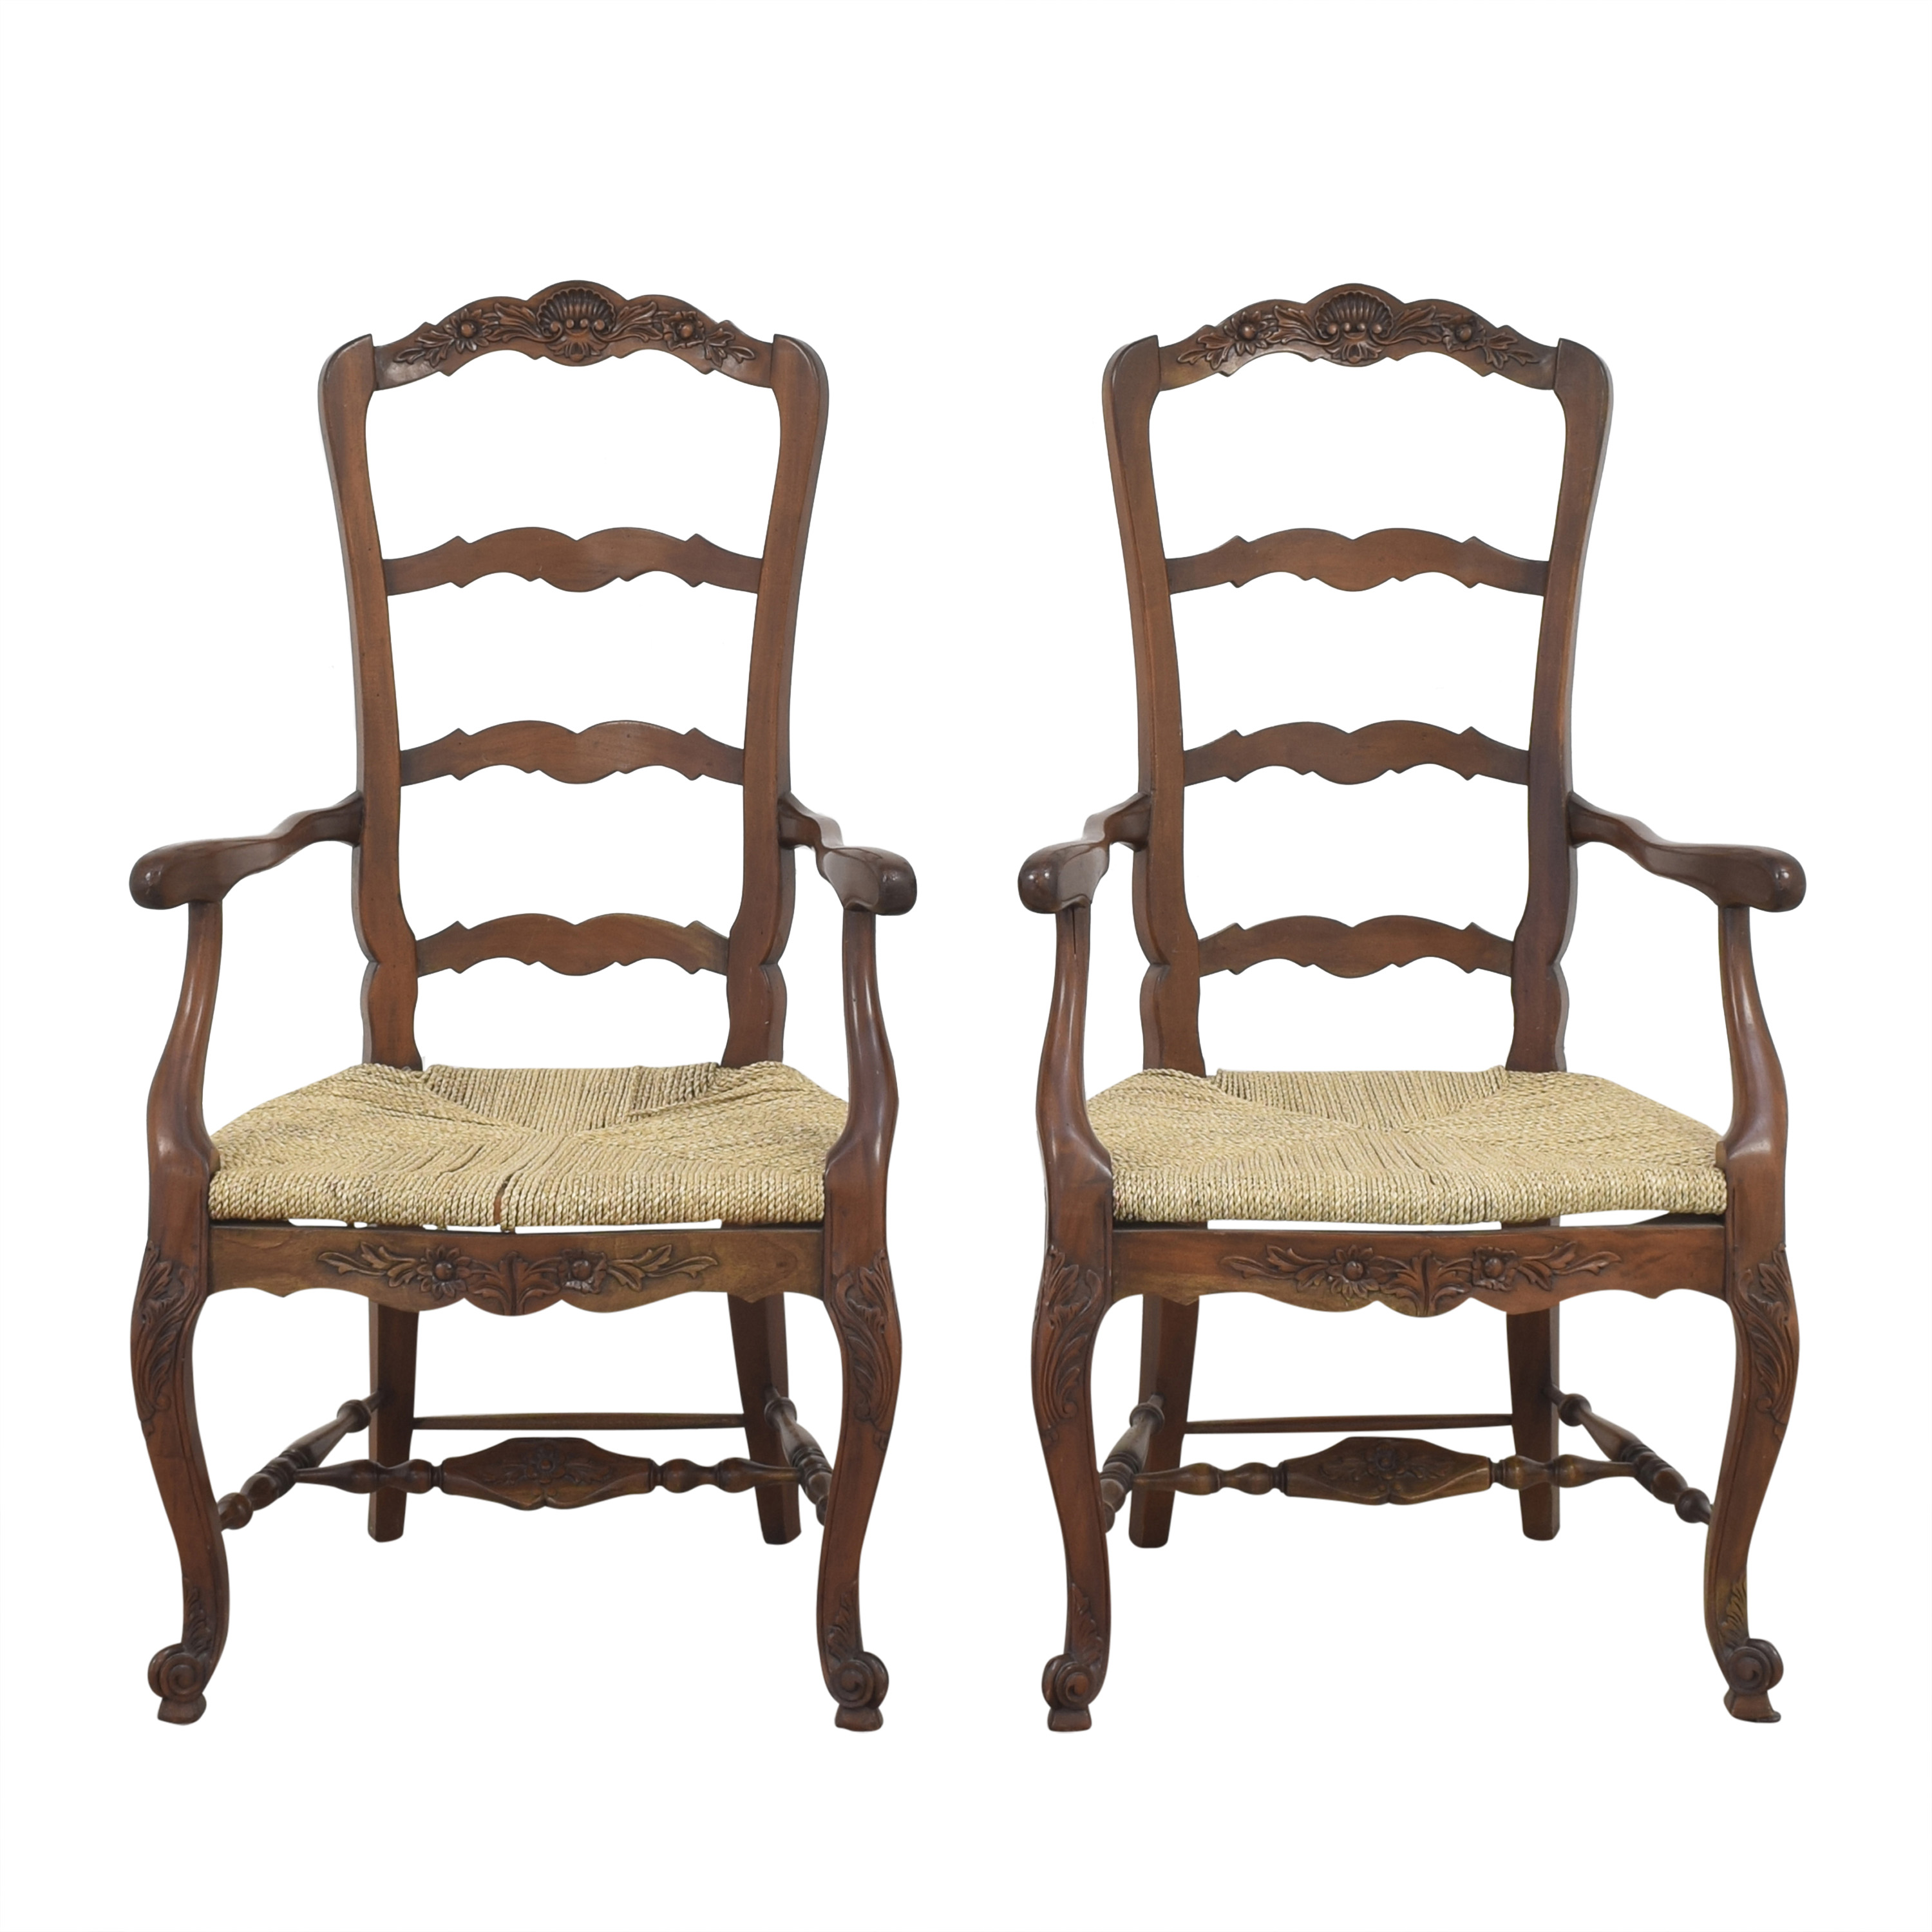 Marie Albert Marie Albert French Country Ladder Back Dining Chairs light brown and